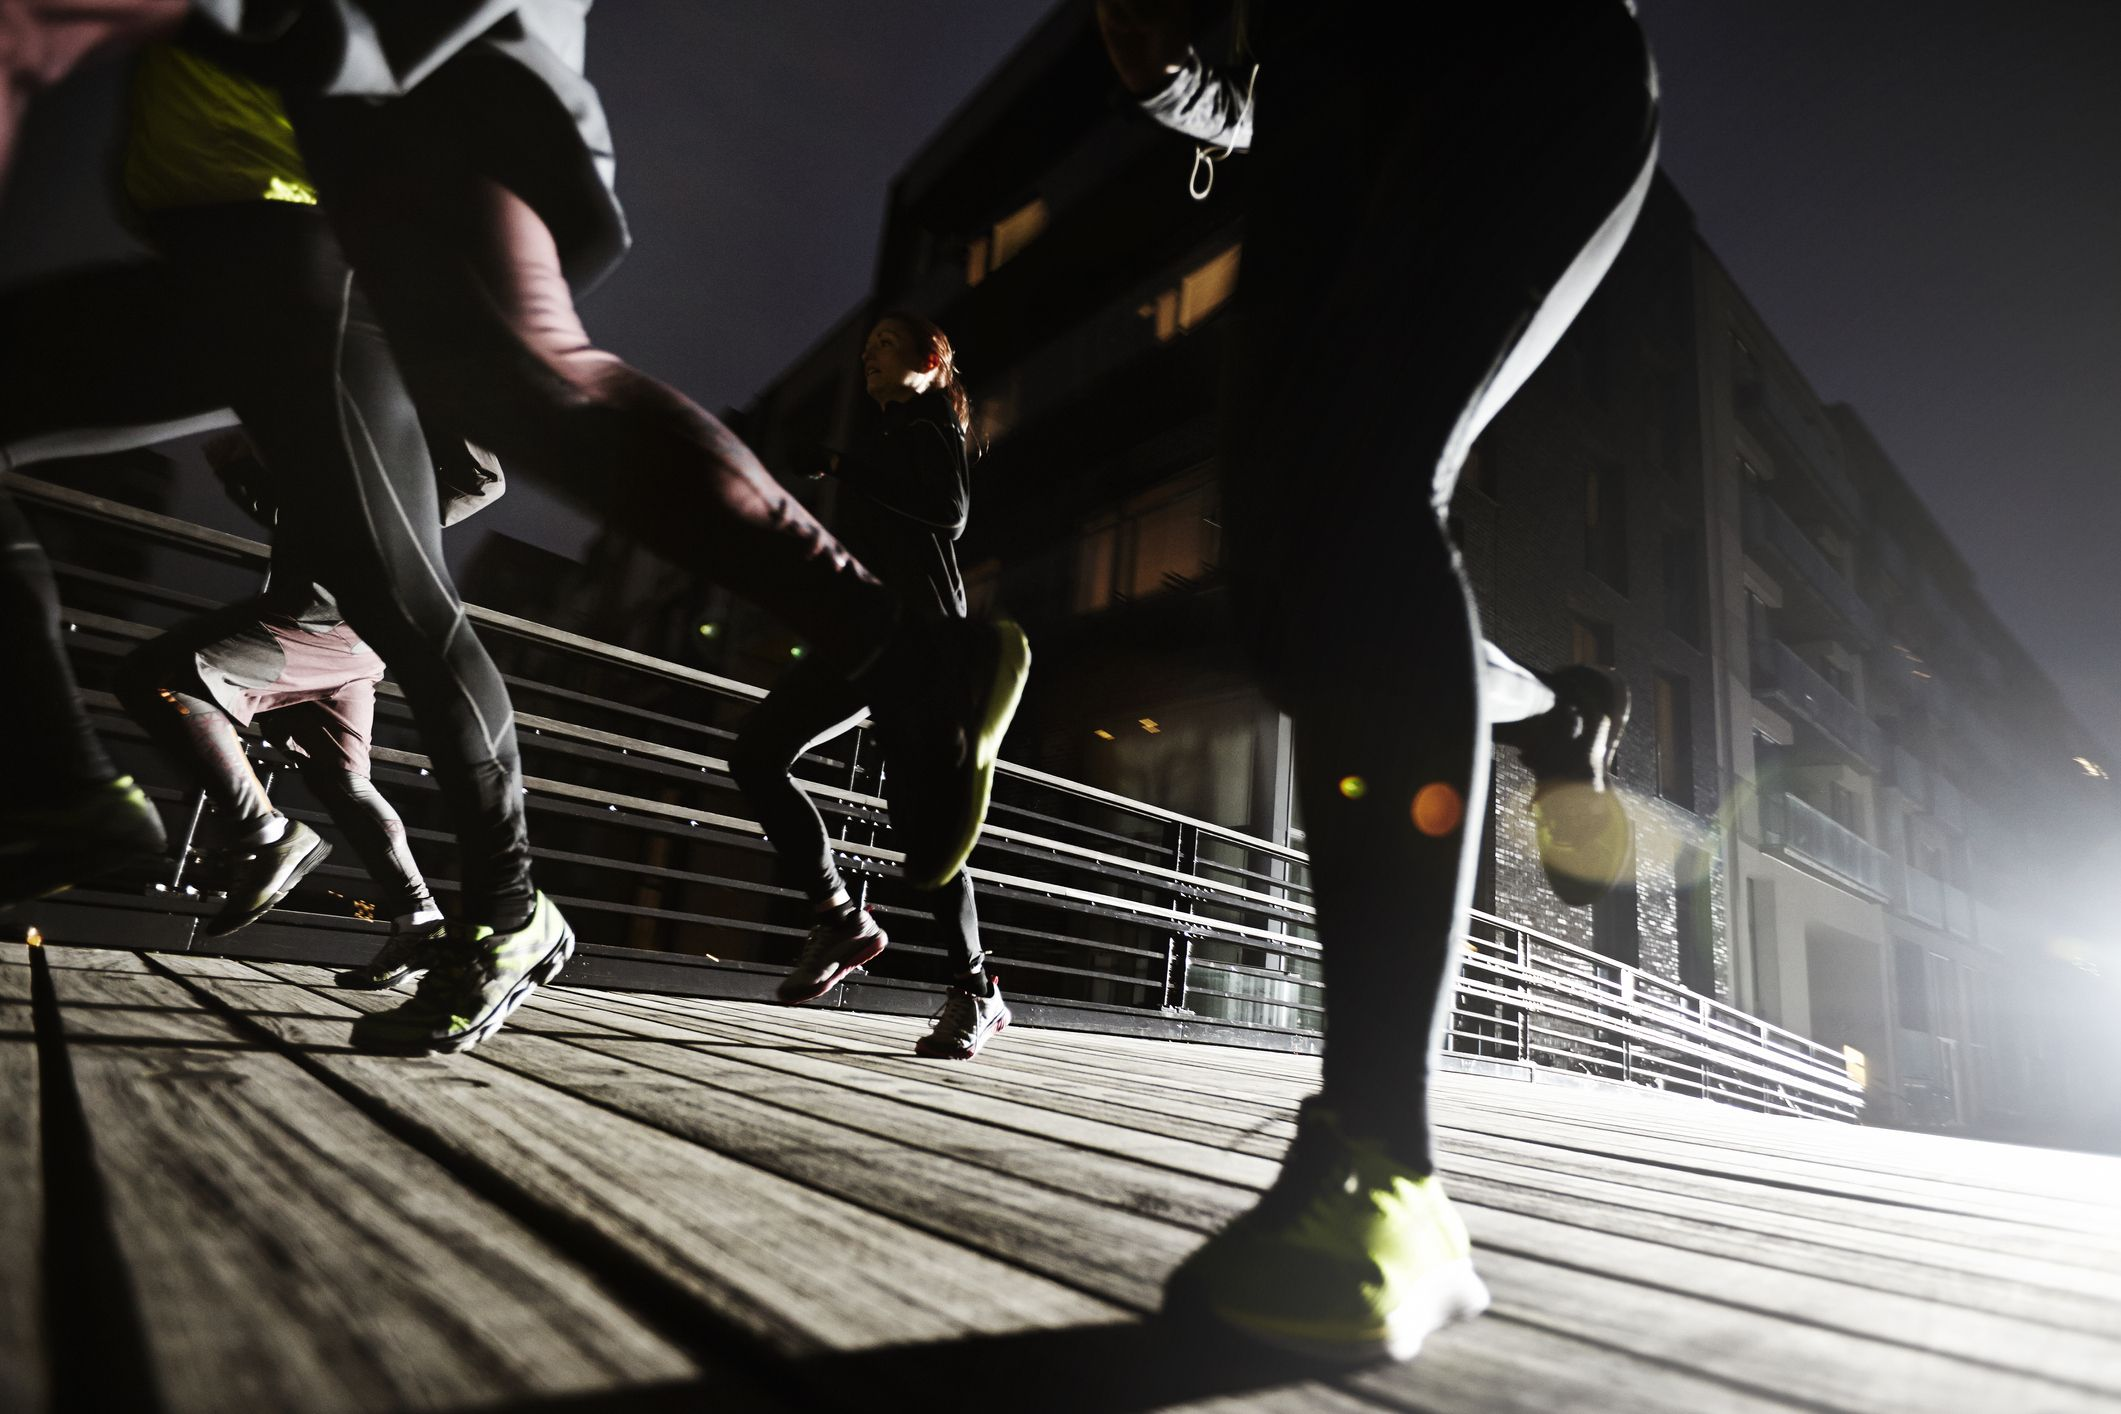 What is cadence and why does it matter?